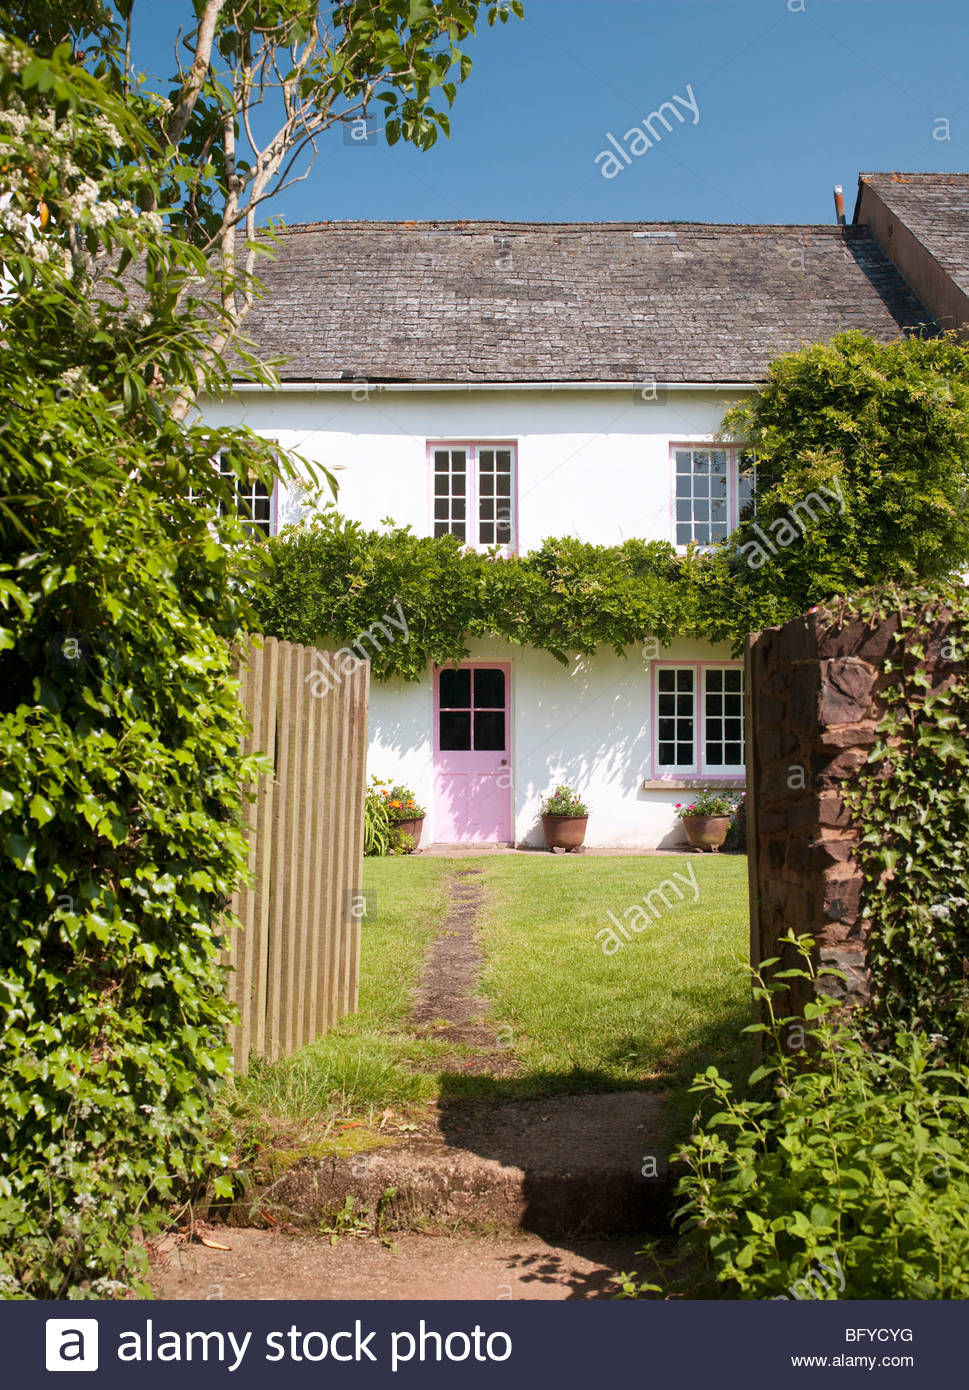 Country house - Stock Image